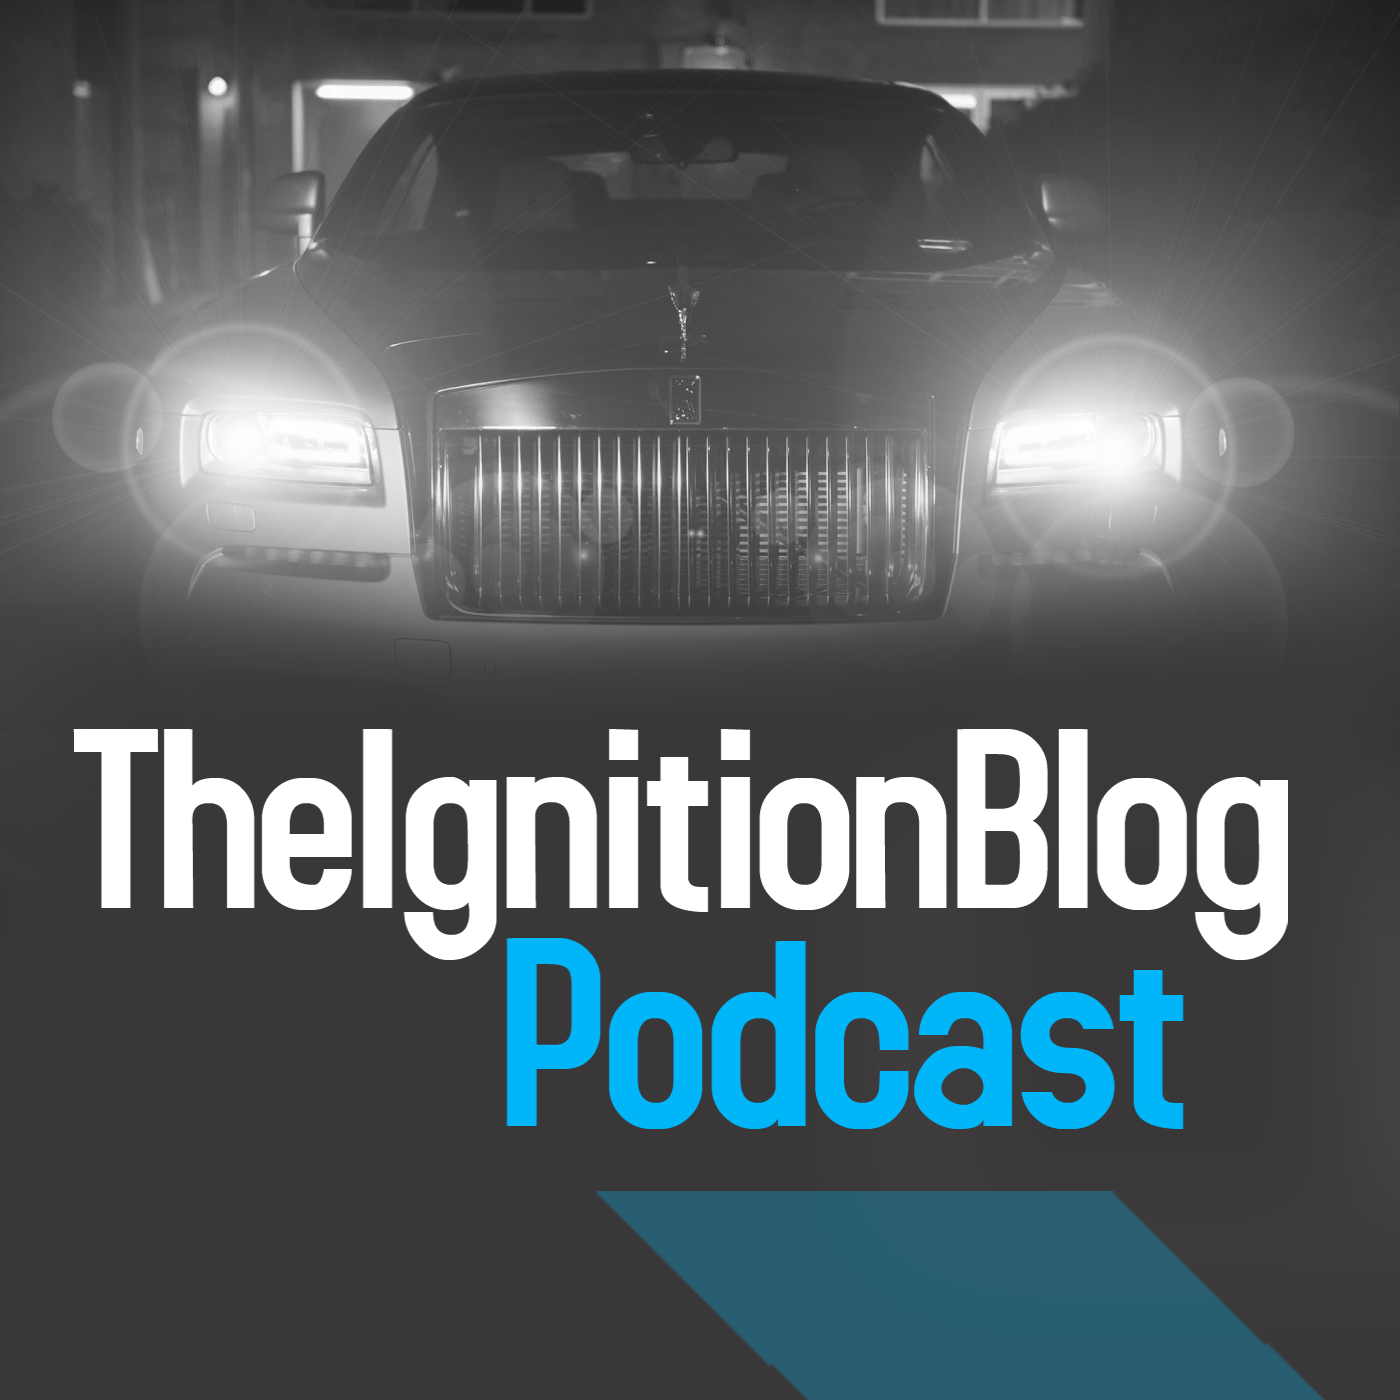 TheIgnitionBlog Podcast